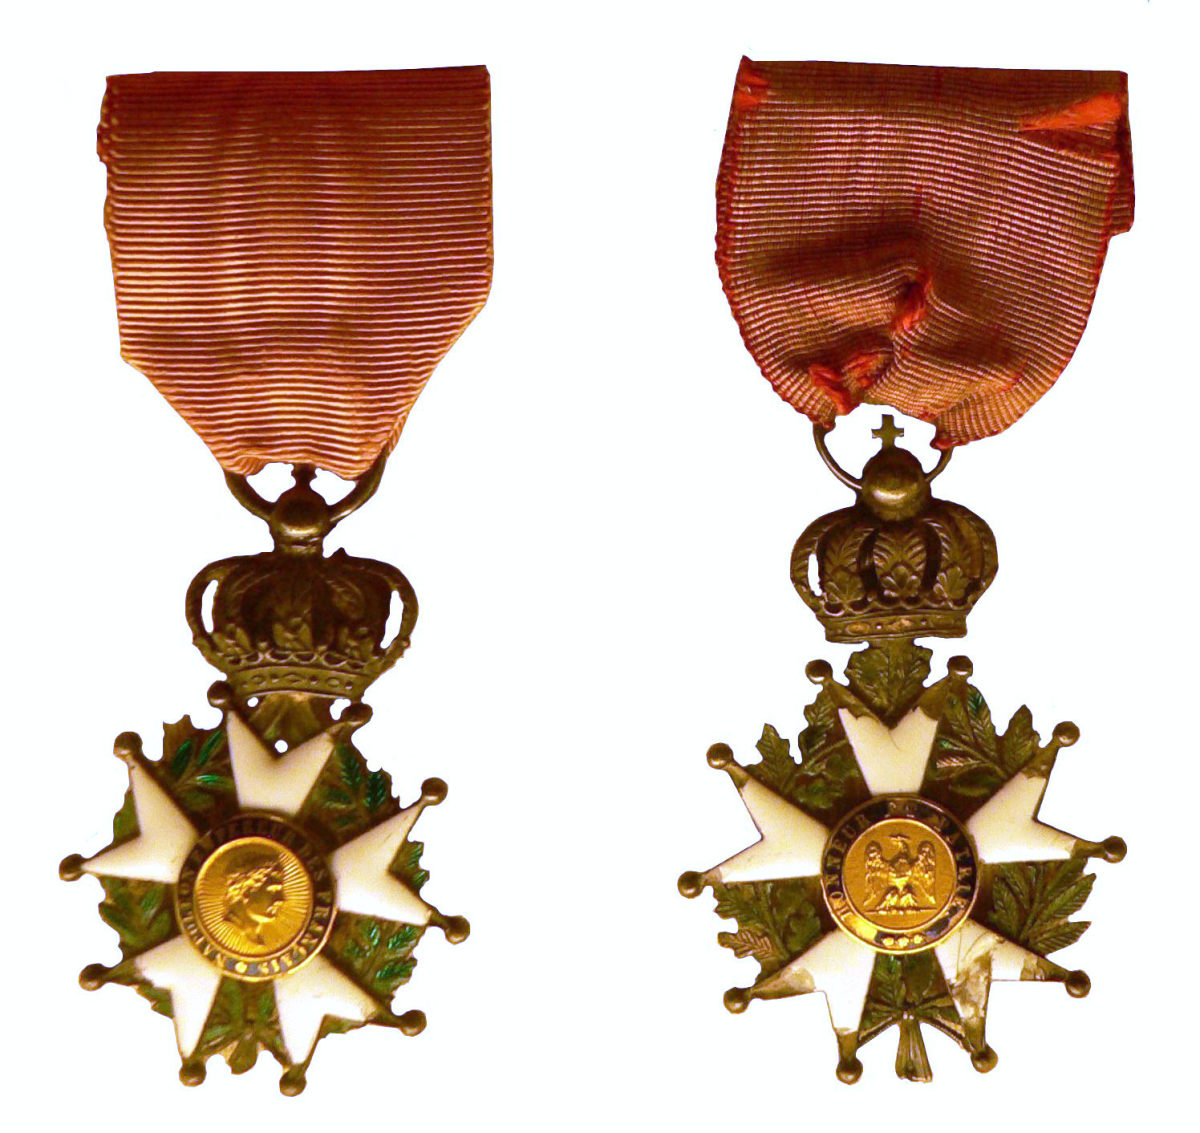 Late Empire Légionnaire insignia: the front features Napoleon's profile and the rear, the imperial Eagle. An imperial crown joins the cross and the ribbon.